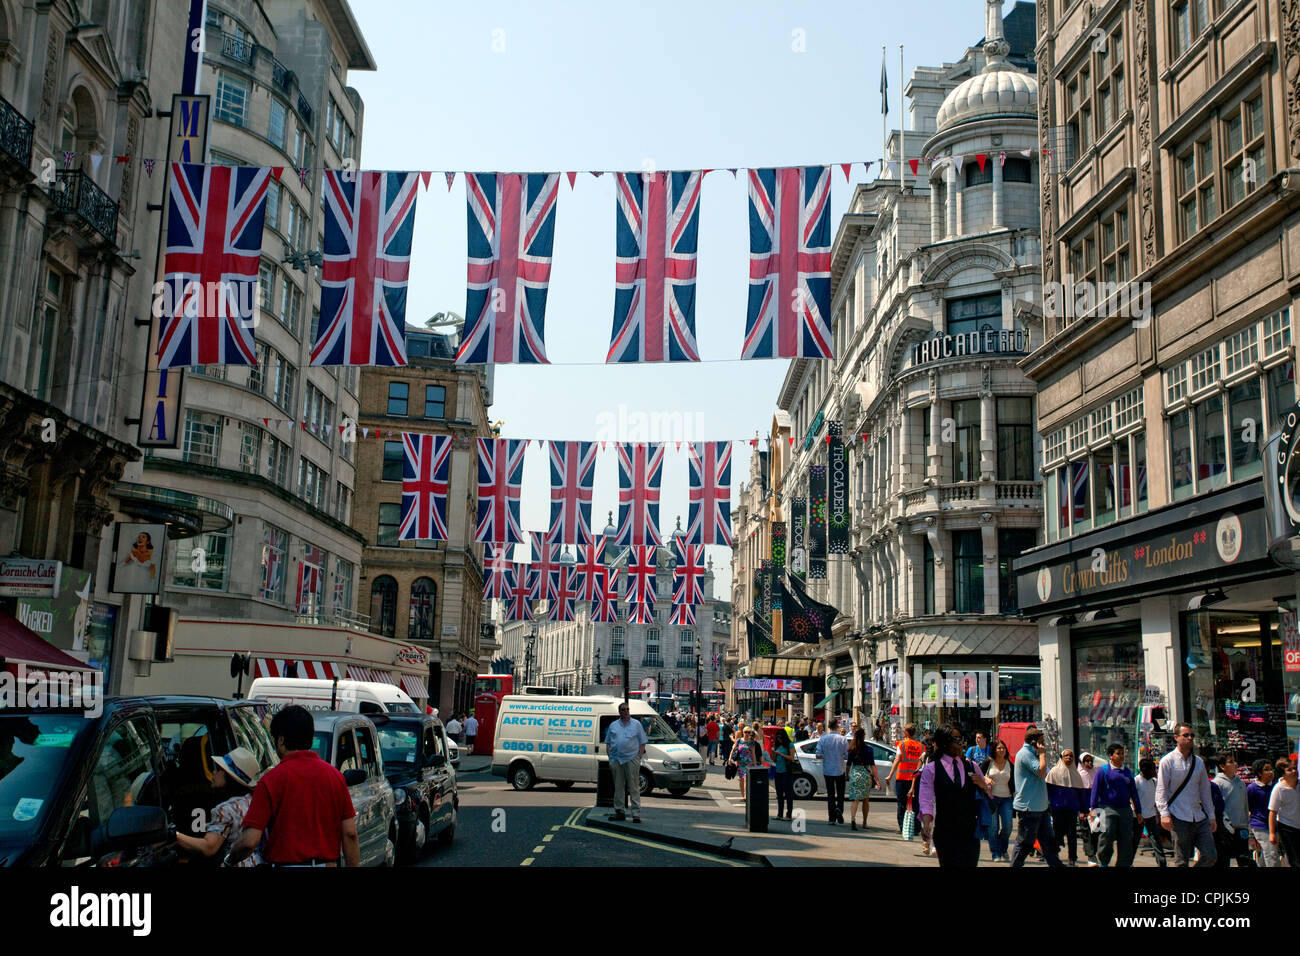 Union Jack bunting between Leicester Square & Piccadilly Circus, London - Stock Image